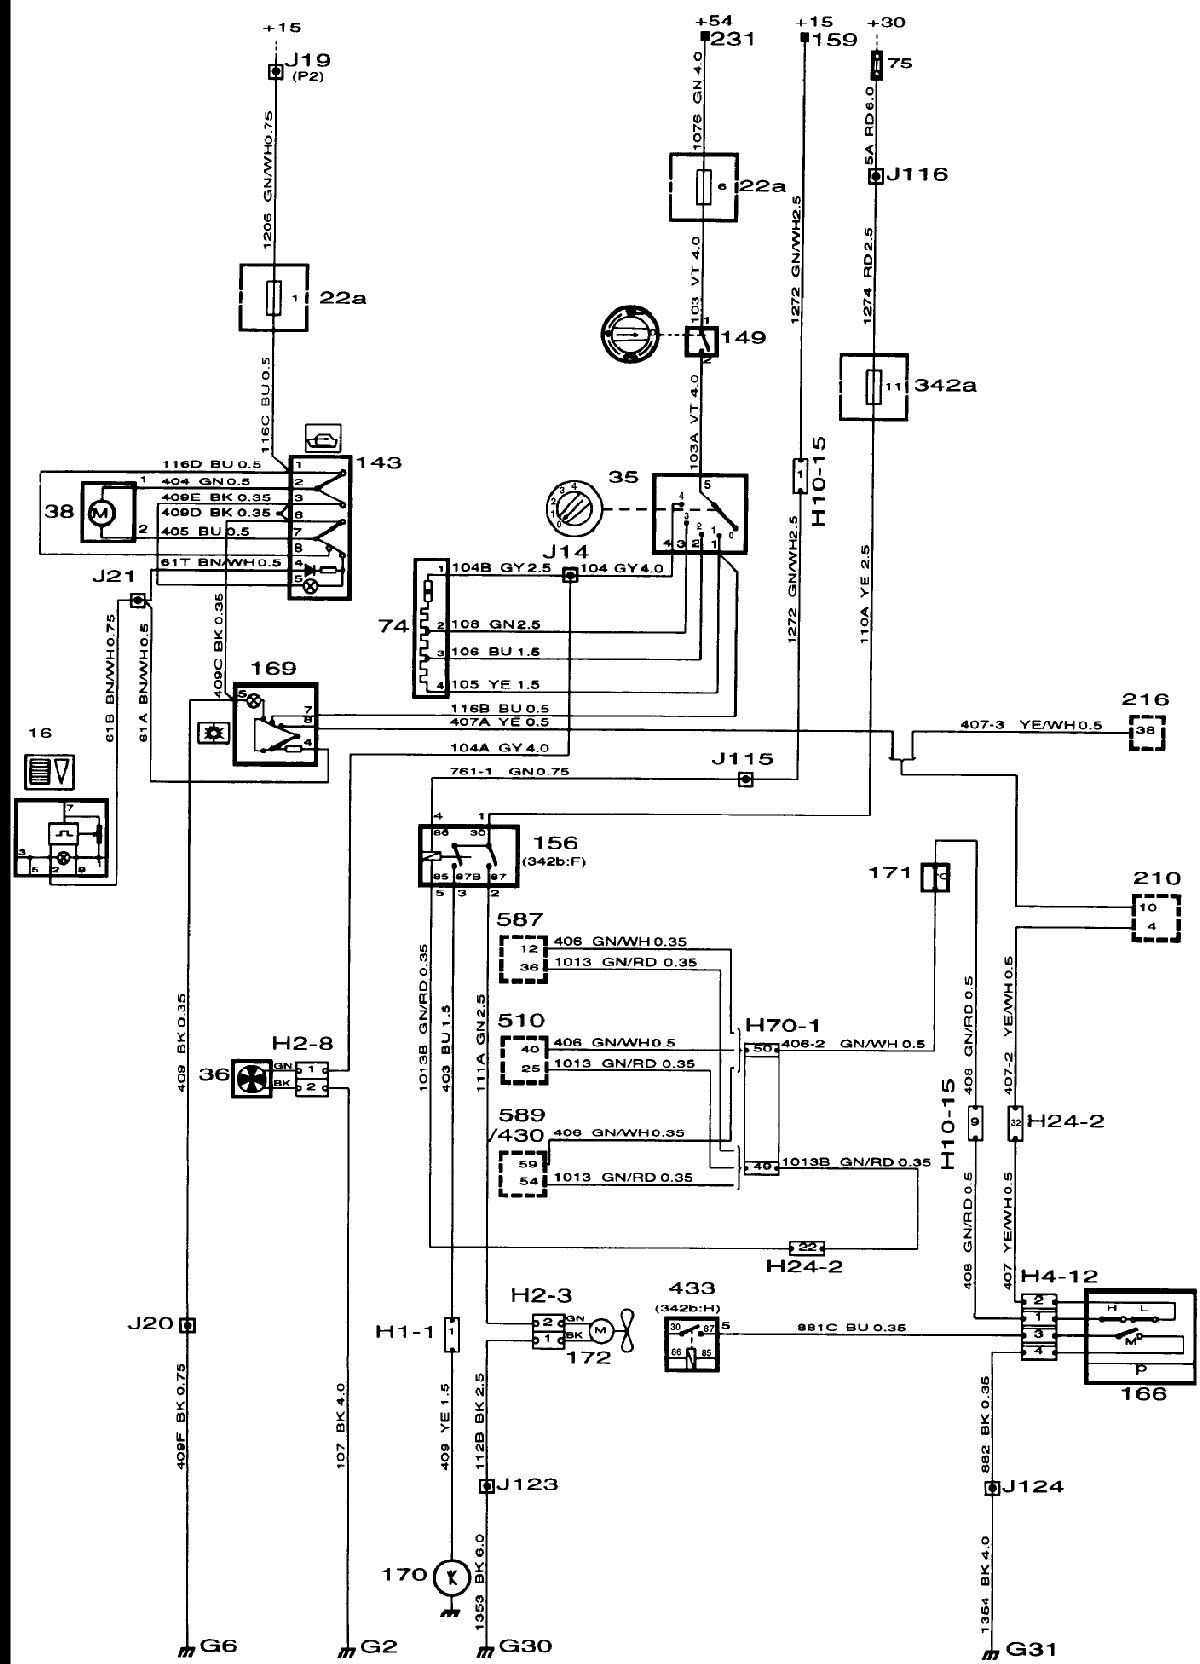 2000 saab 9 3 wiring diagram wiring data schema u2022 rh paletteparty co